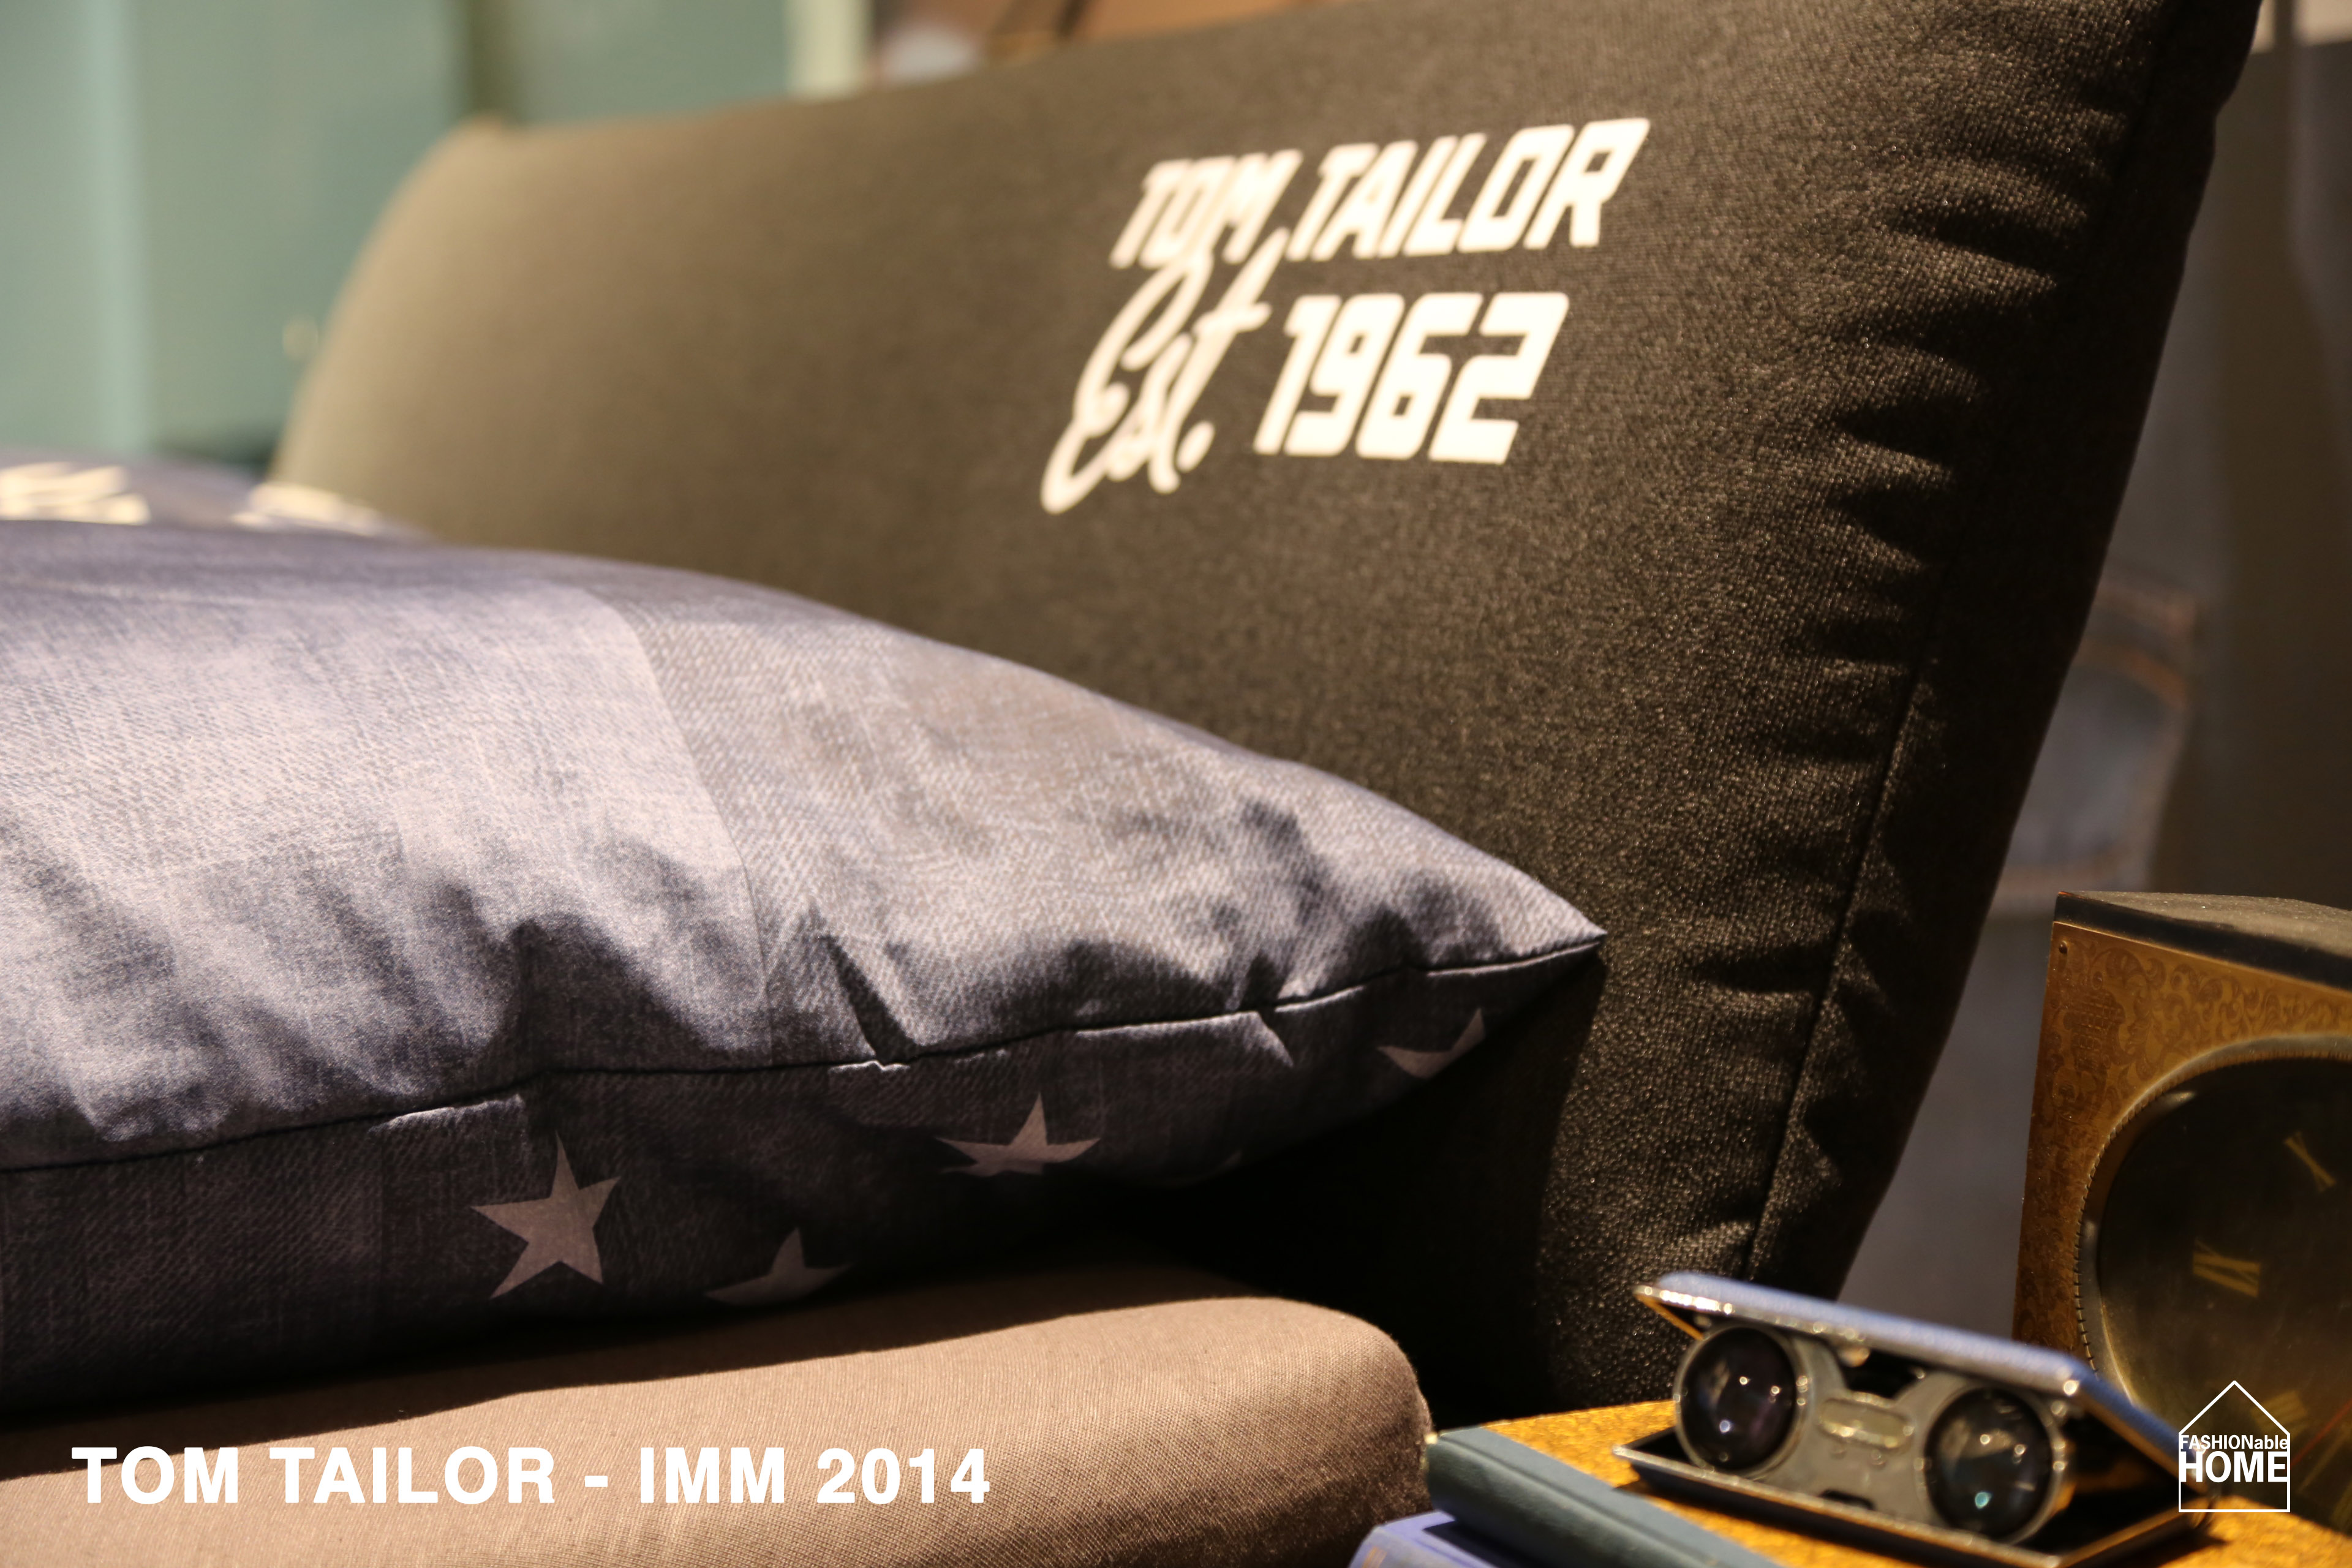 Tom Tailor Winter Love A Fashion Friend New Tom Tailor Sofas And Beds Imm 2014 Fashionable